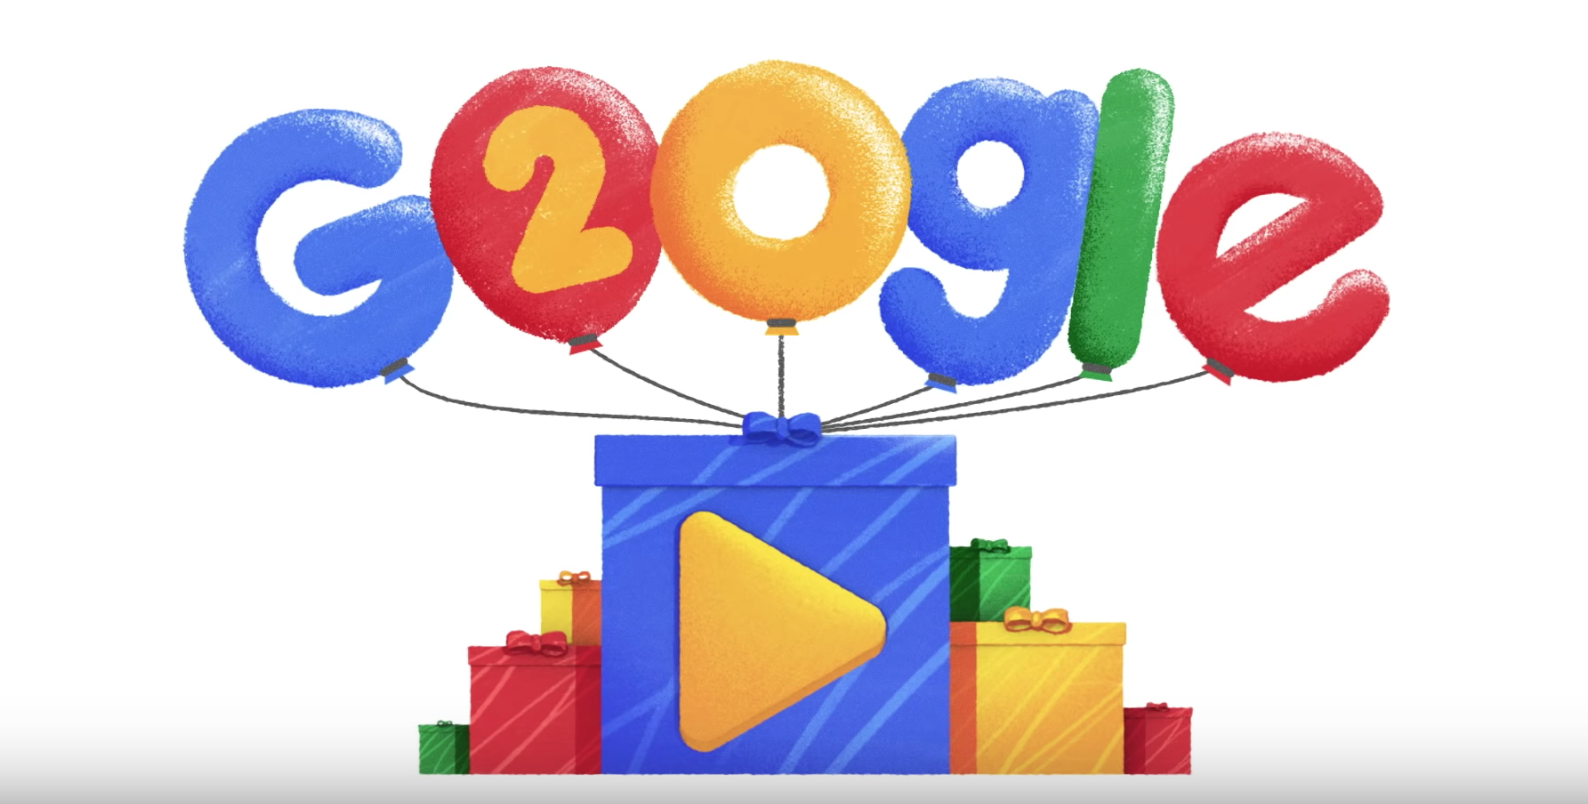 Google Doodle Animates Popular Questions for 20th Birthday